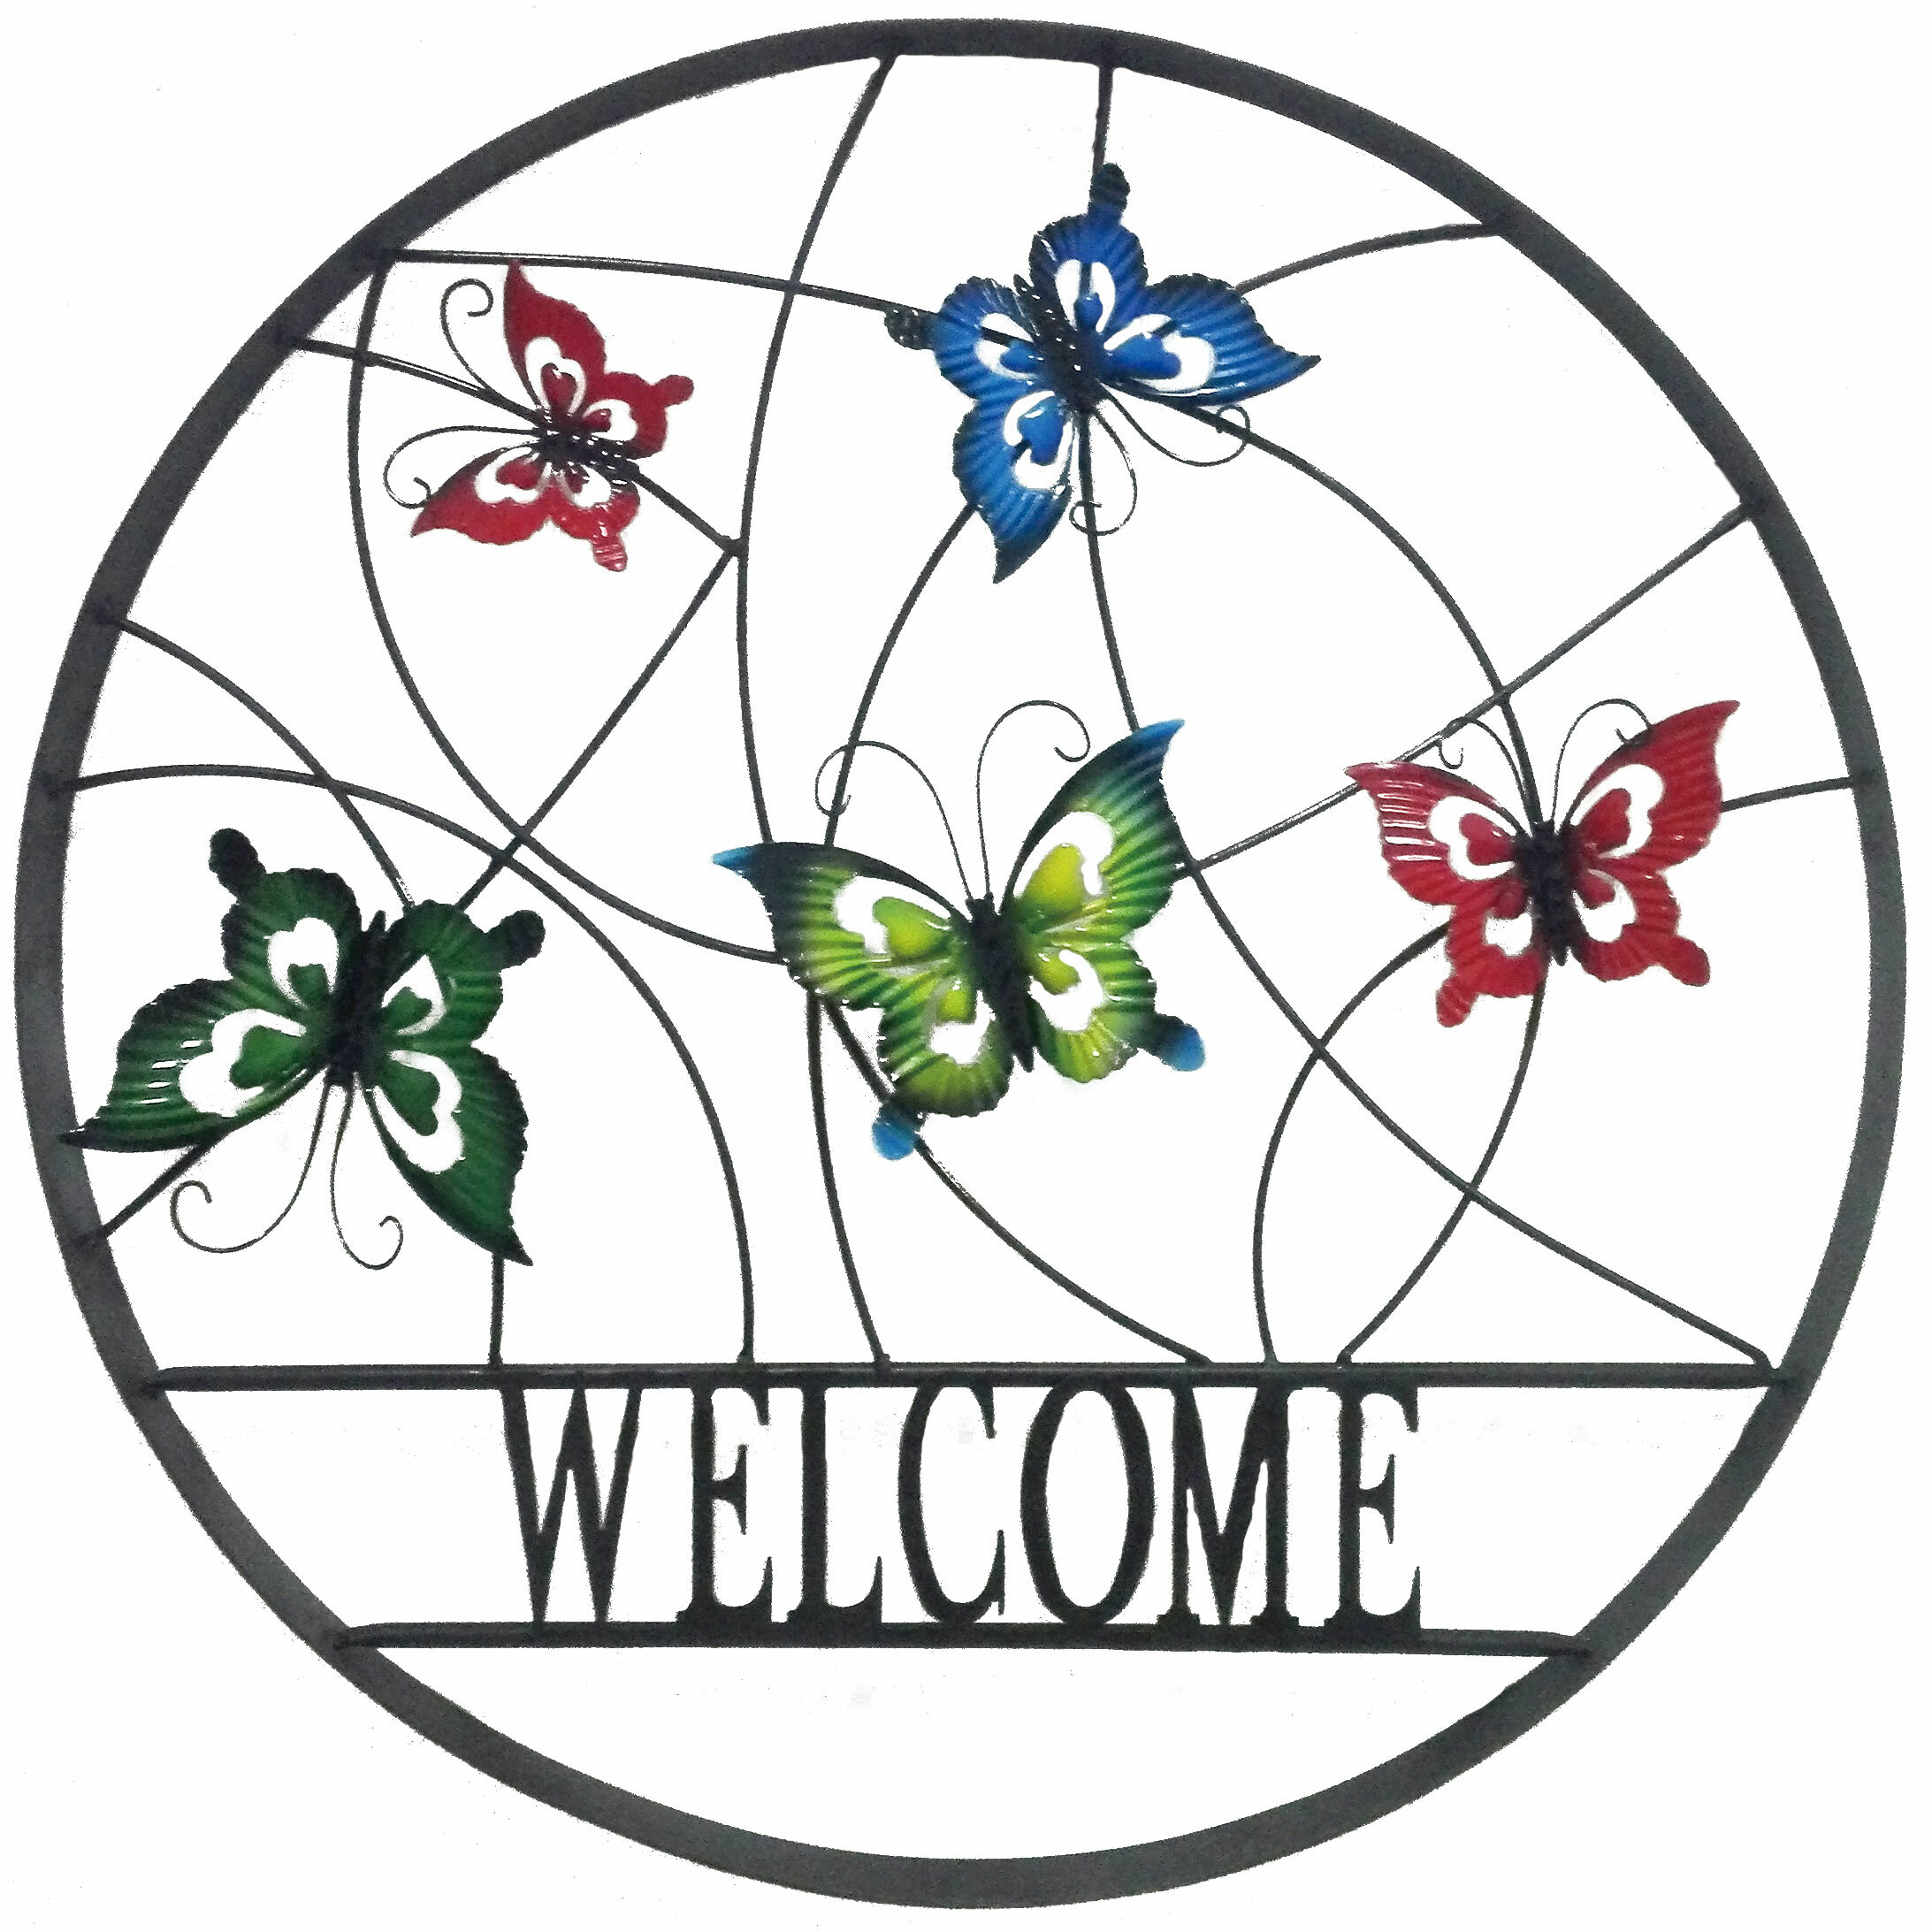 August Grove Arsen Decorative Outdoor Butterfly Welcome Wheel Wall